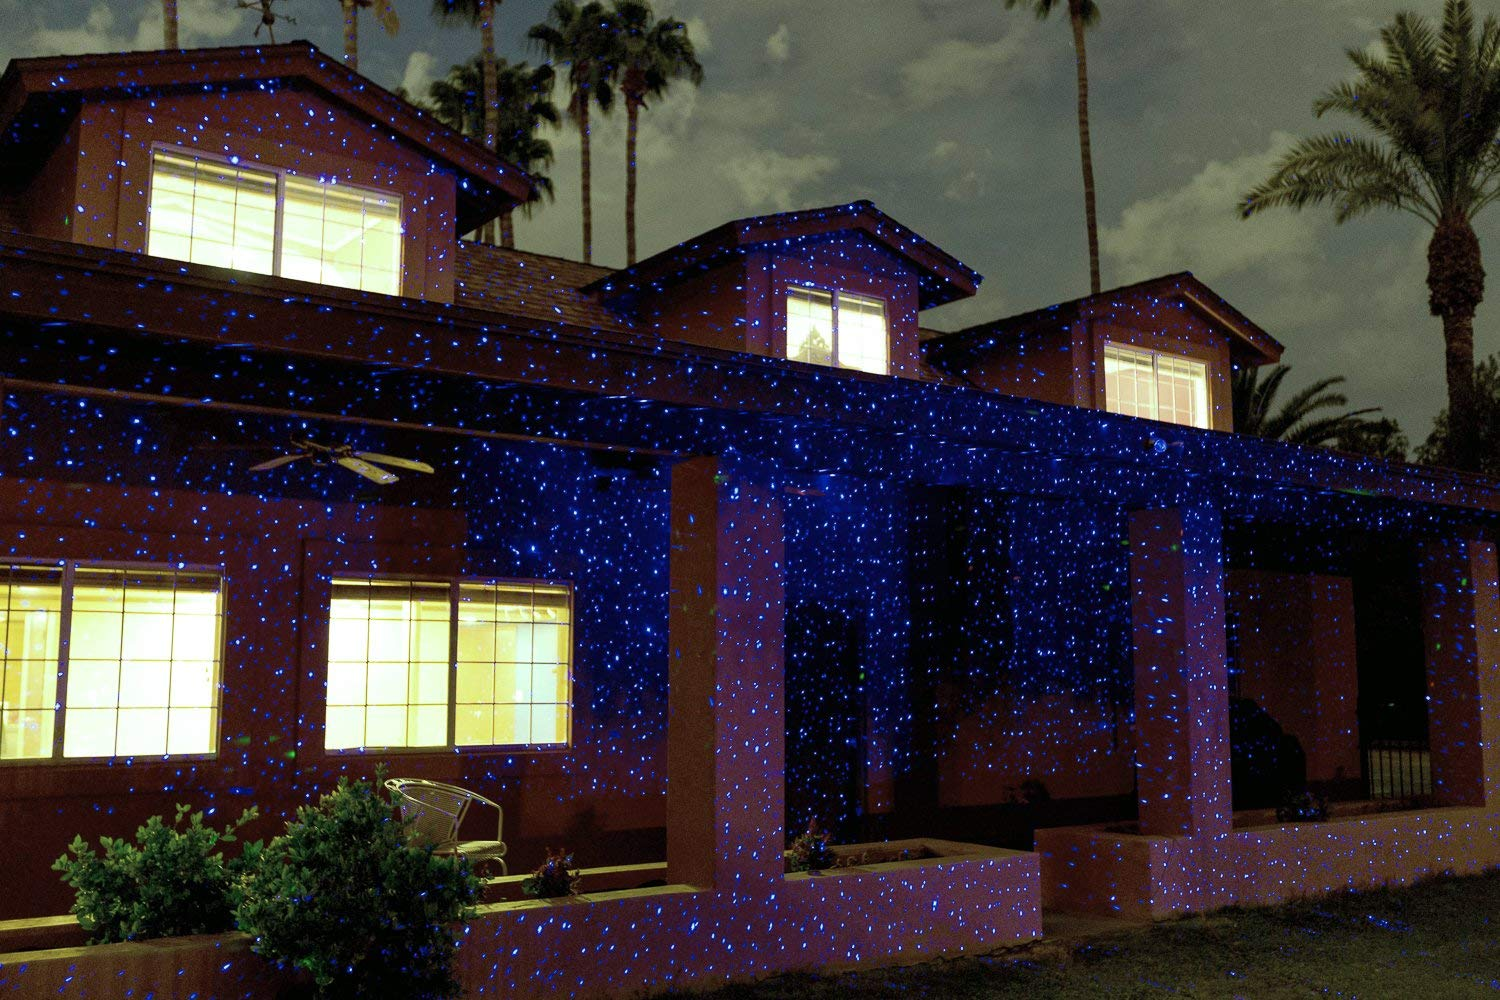 Blue Sparkle Magic Laser Light on House at Night